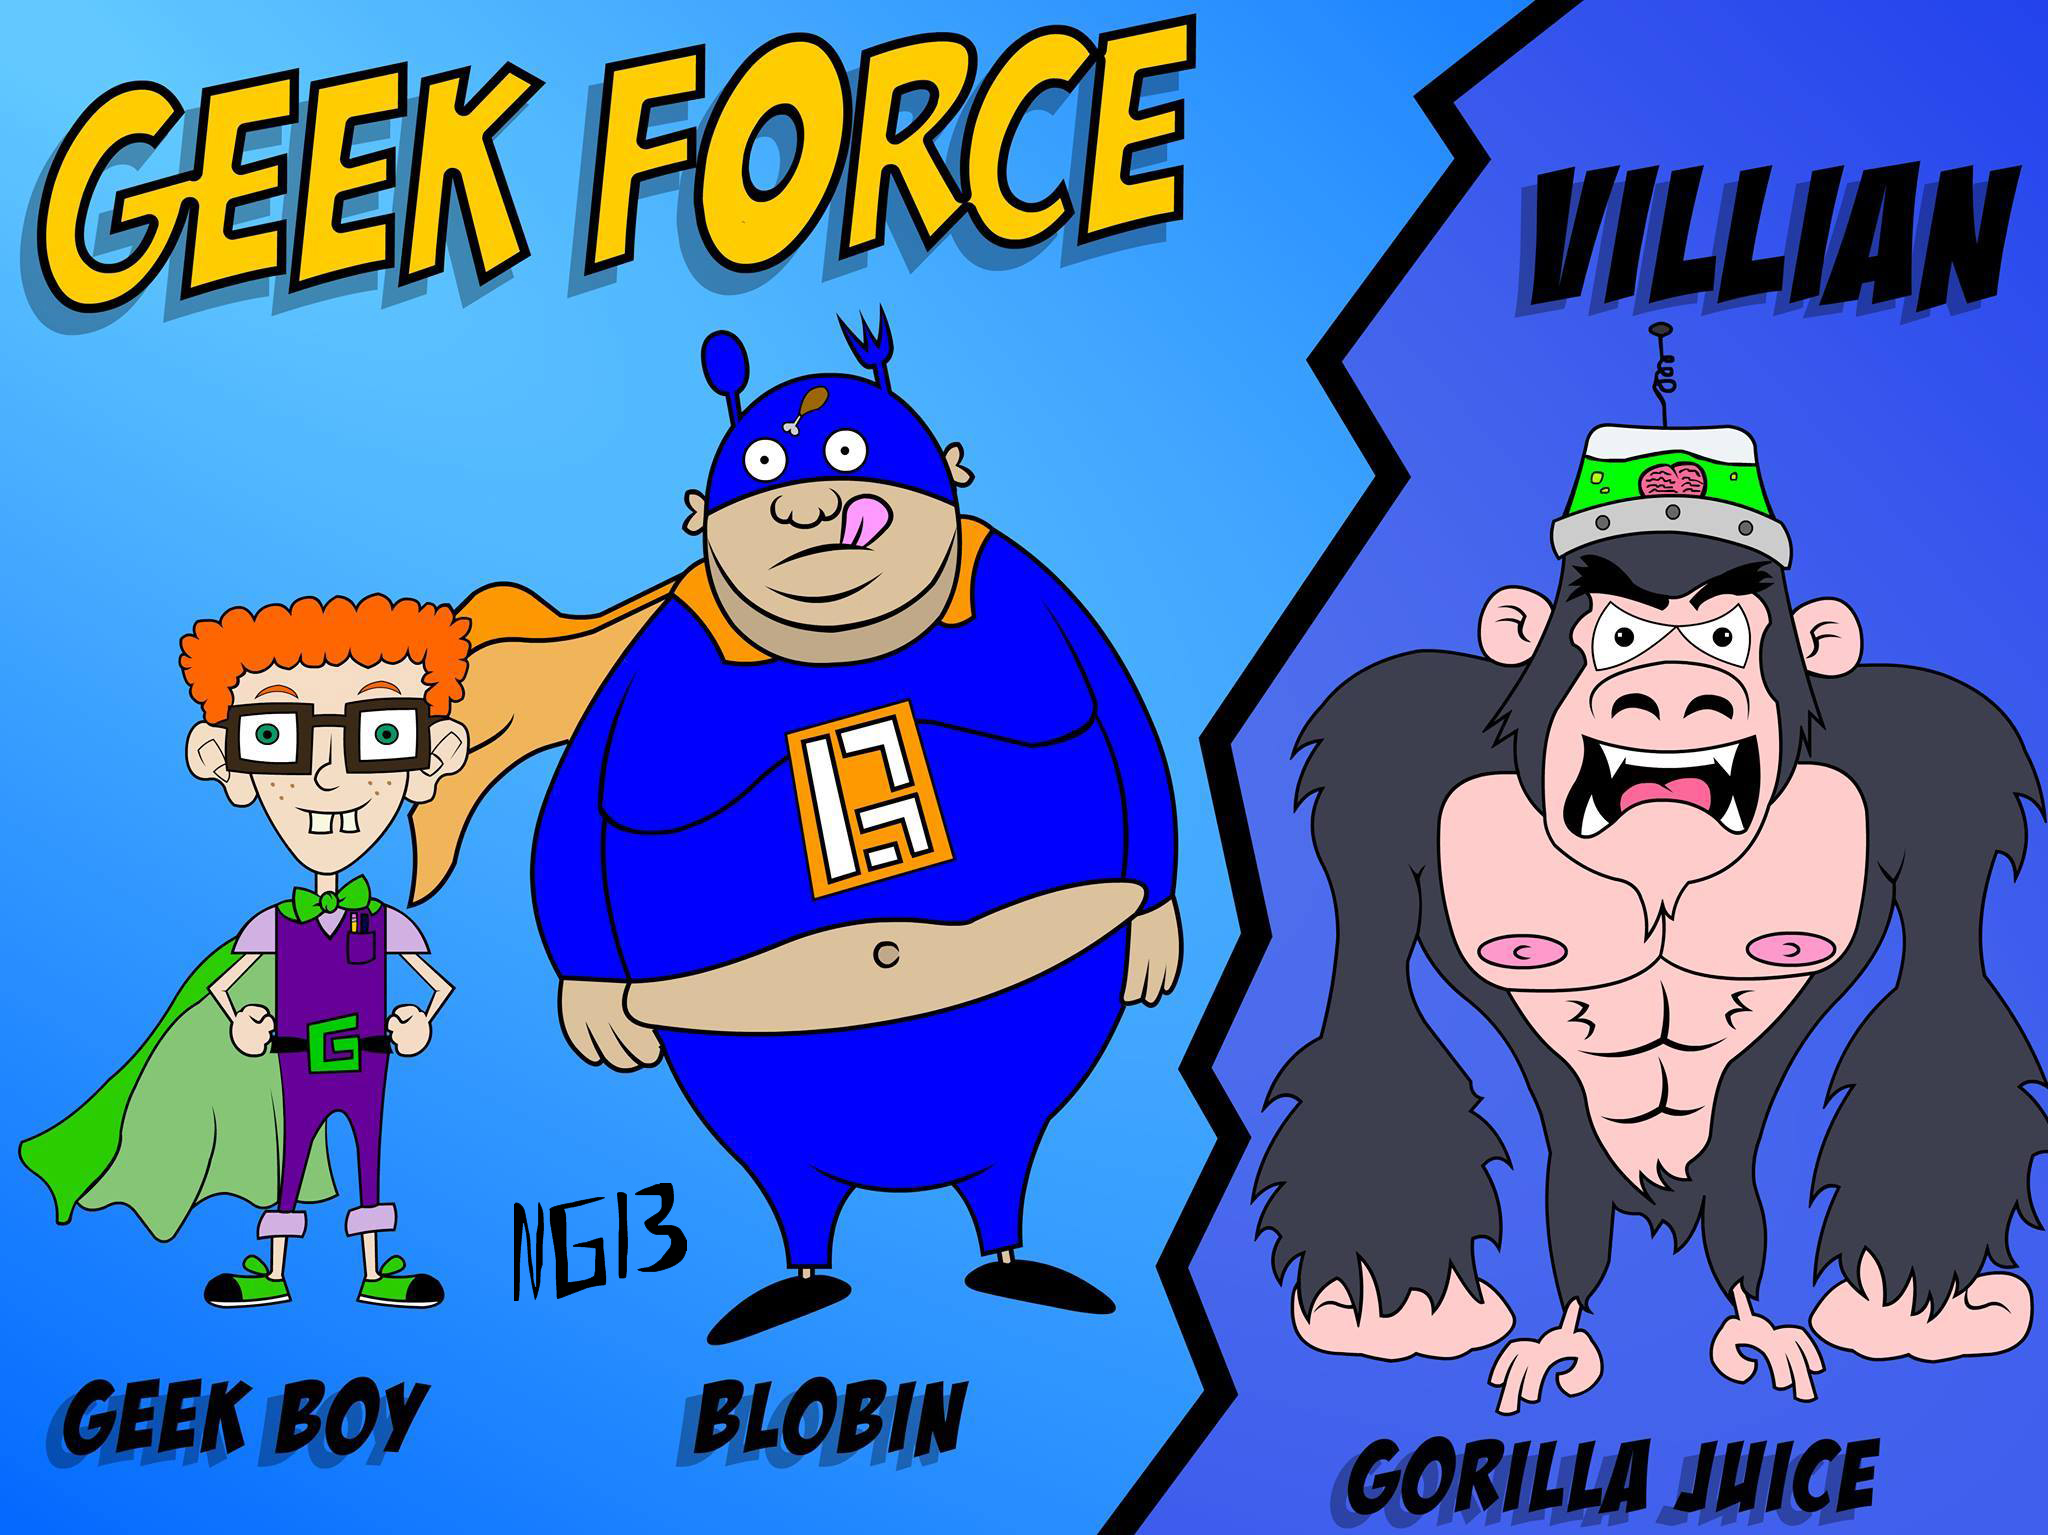 Geek Force